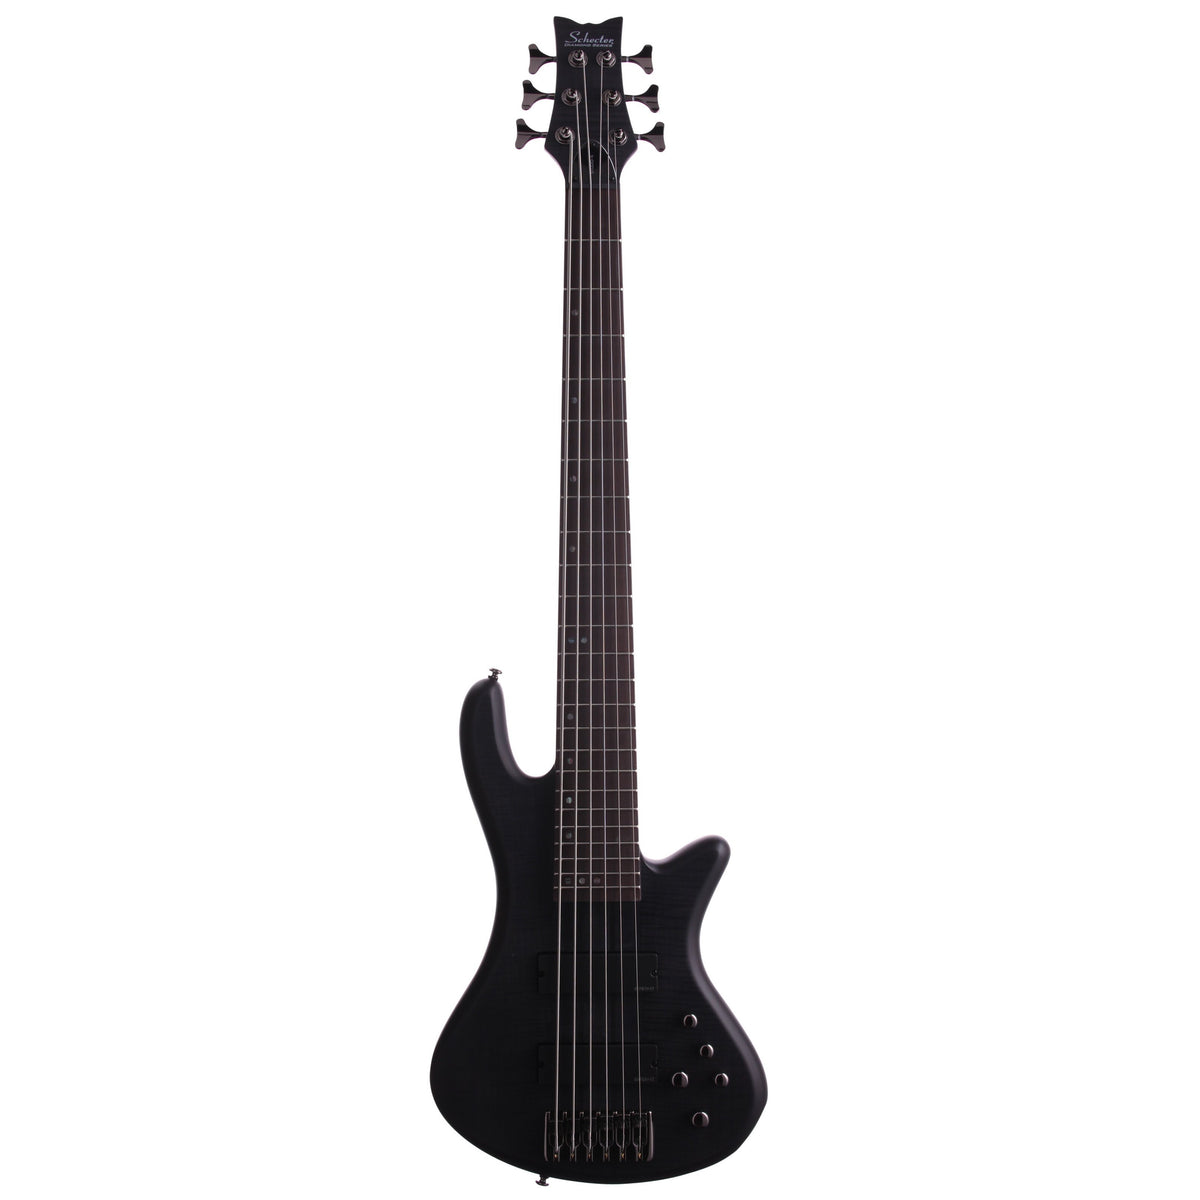 Schecter Stiletto Studio-6 6-String Electric Bass, See Thru Black Satin